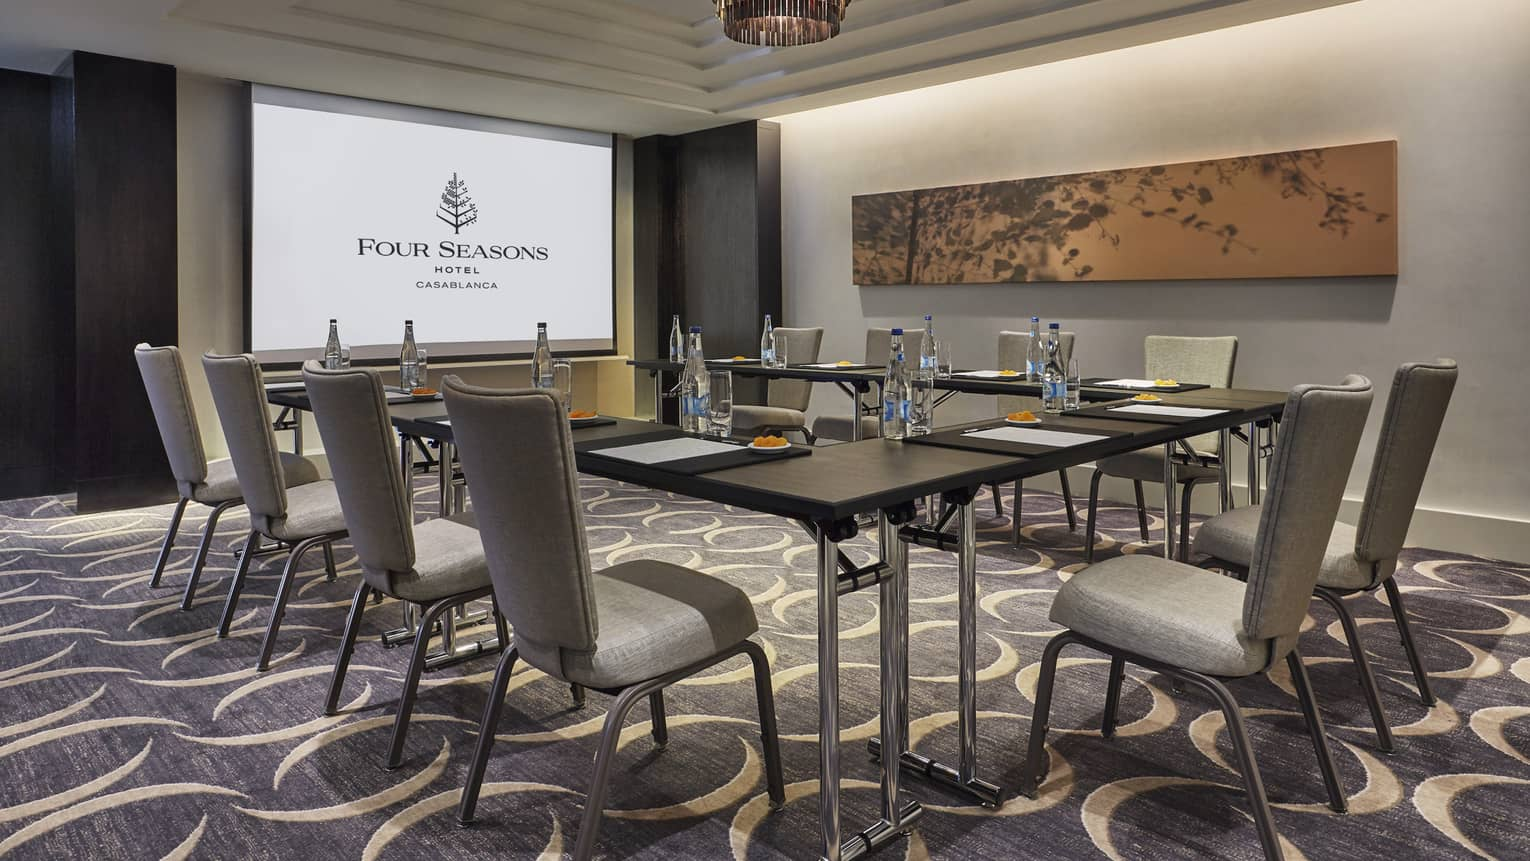 Business meeting room with large screen with Four Seasons logo, tables and chairs